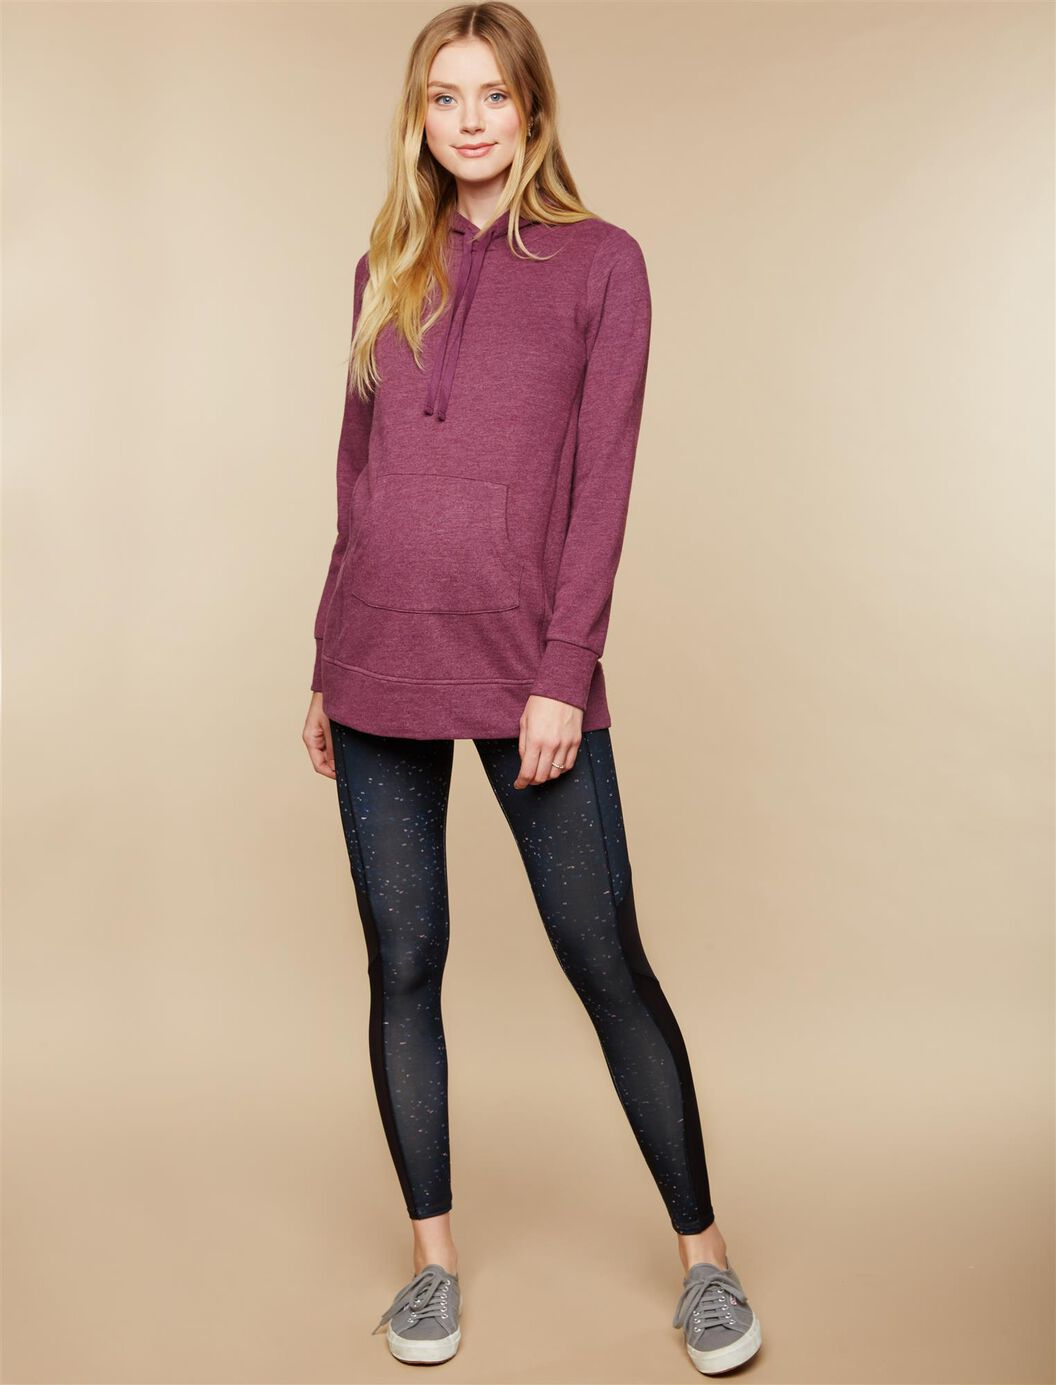 Secret Fit Belly Maternity Leggings at Motherhood Maternity in Victor, NY   Tuggl